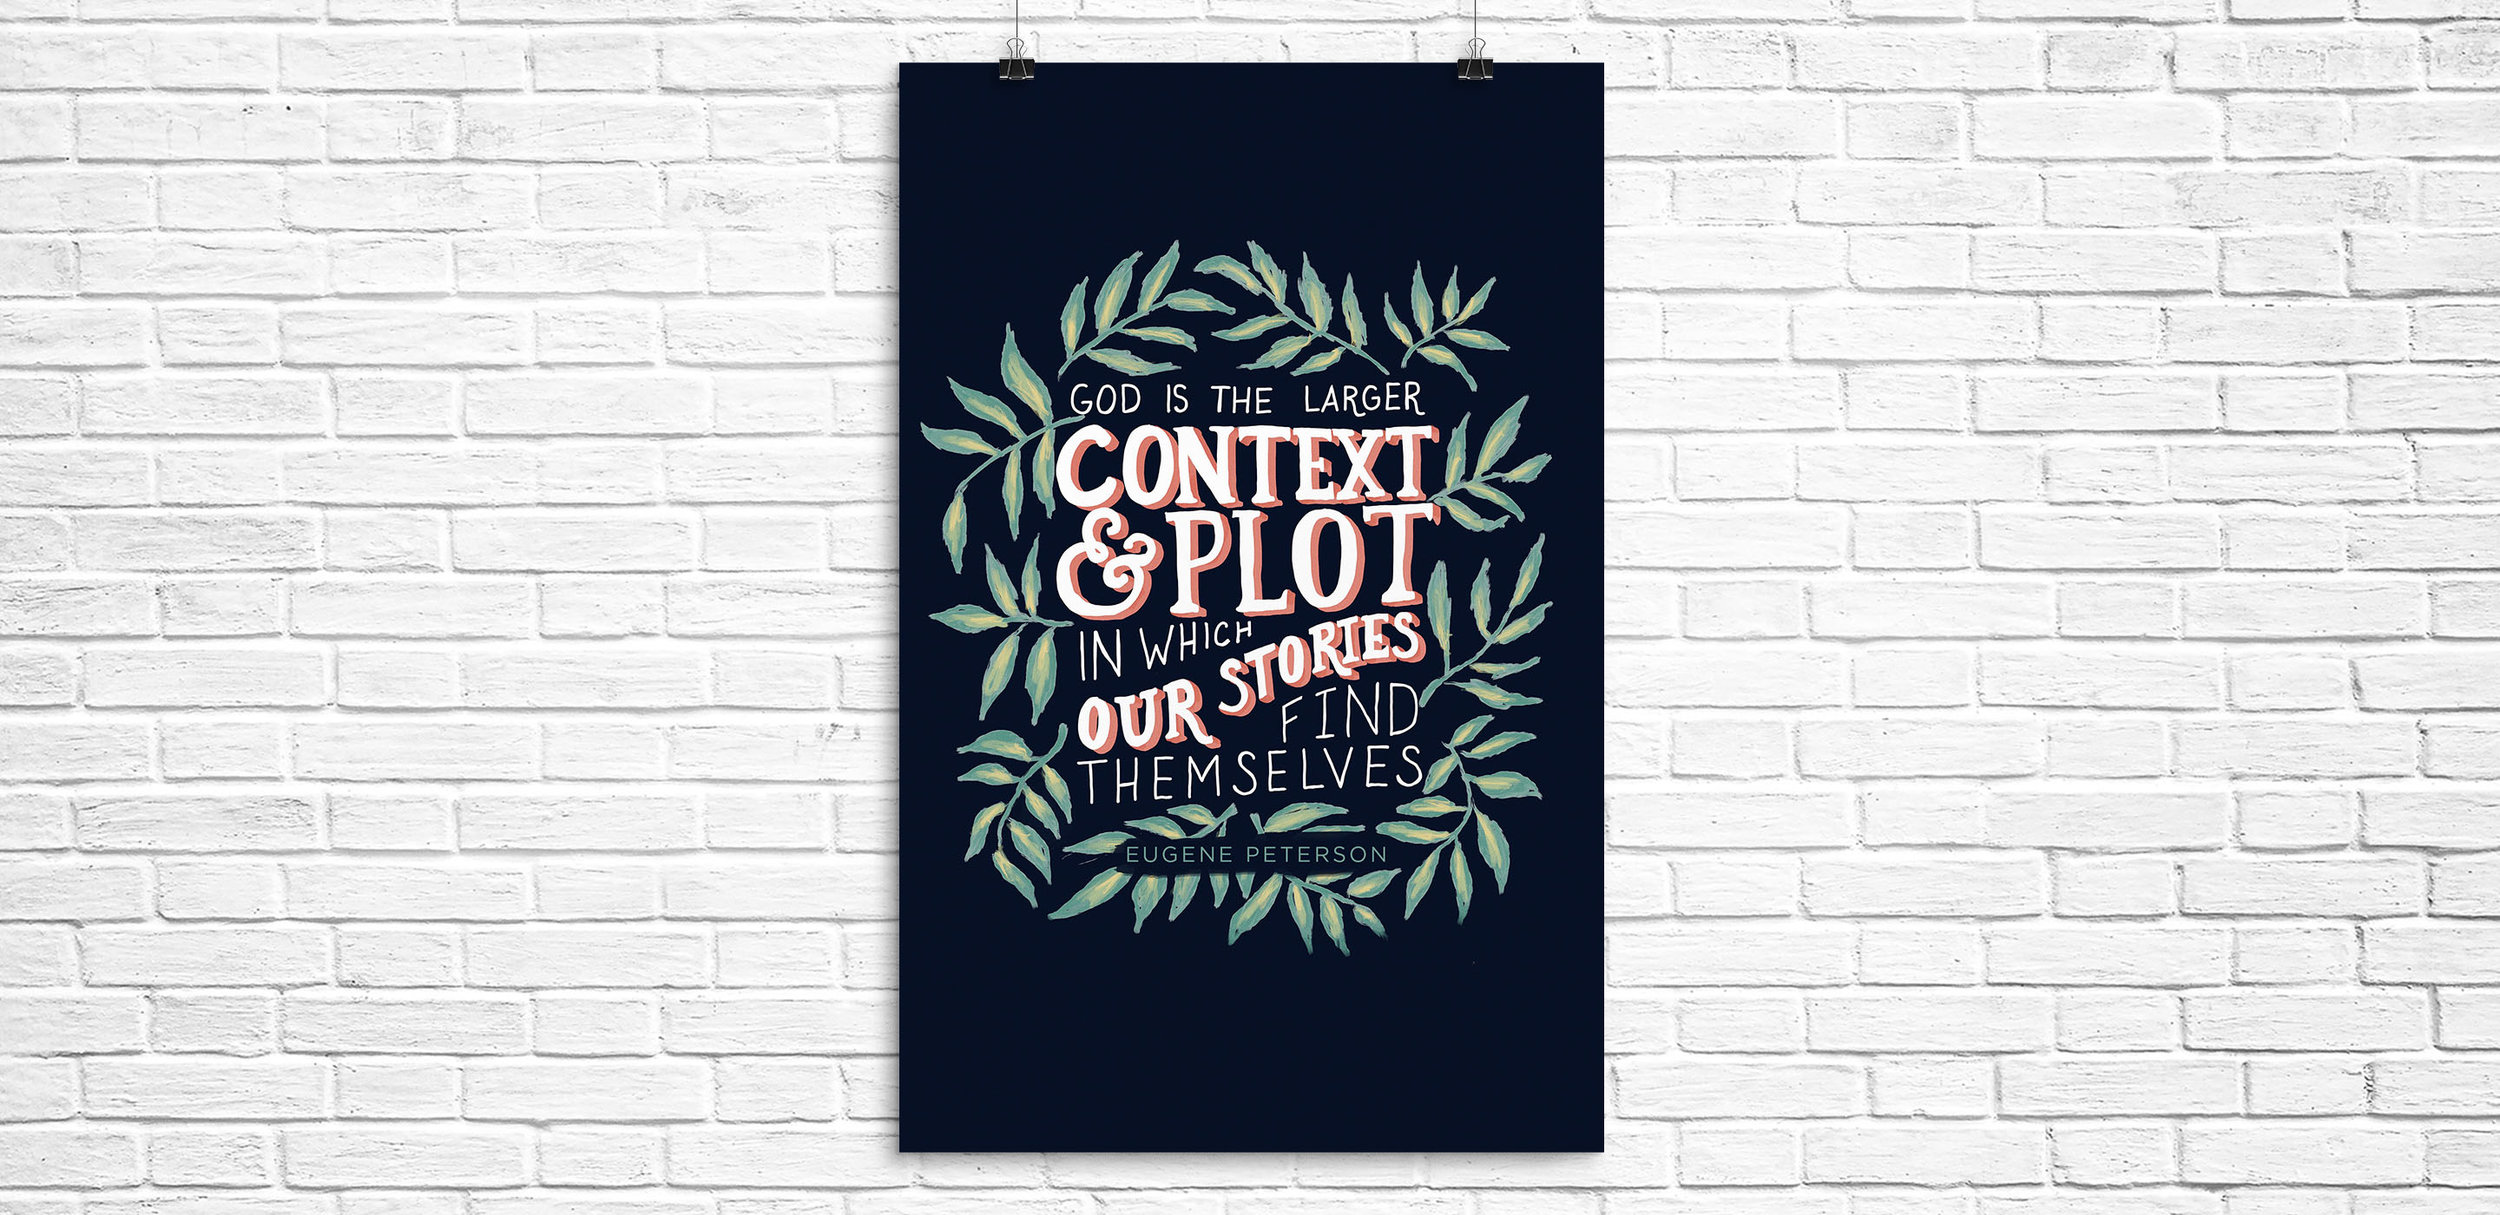 Context and Plot Poster.jpg